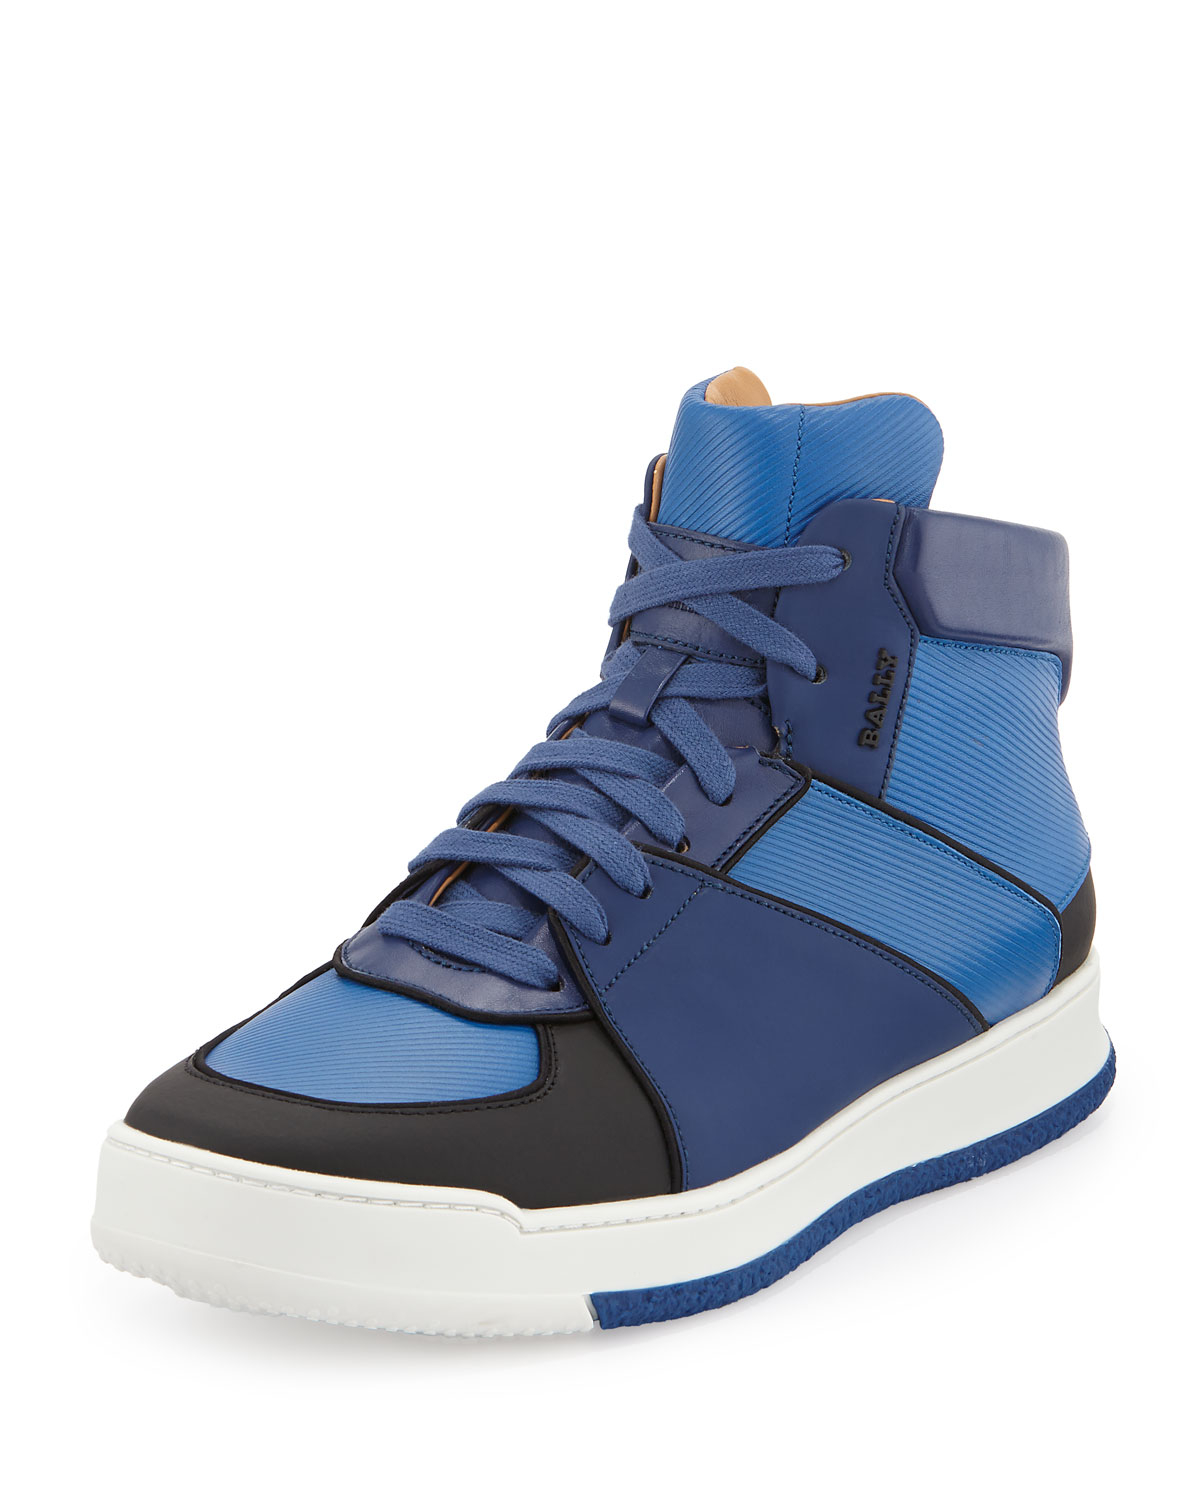 Bally Mens Hedern High Top Sneakers